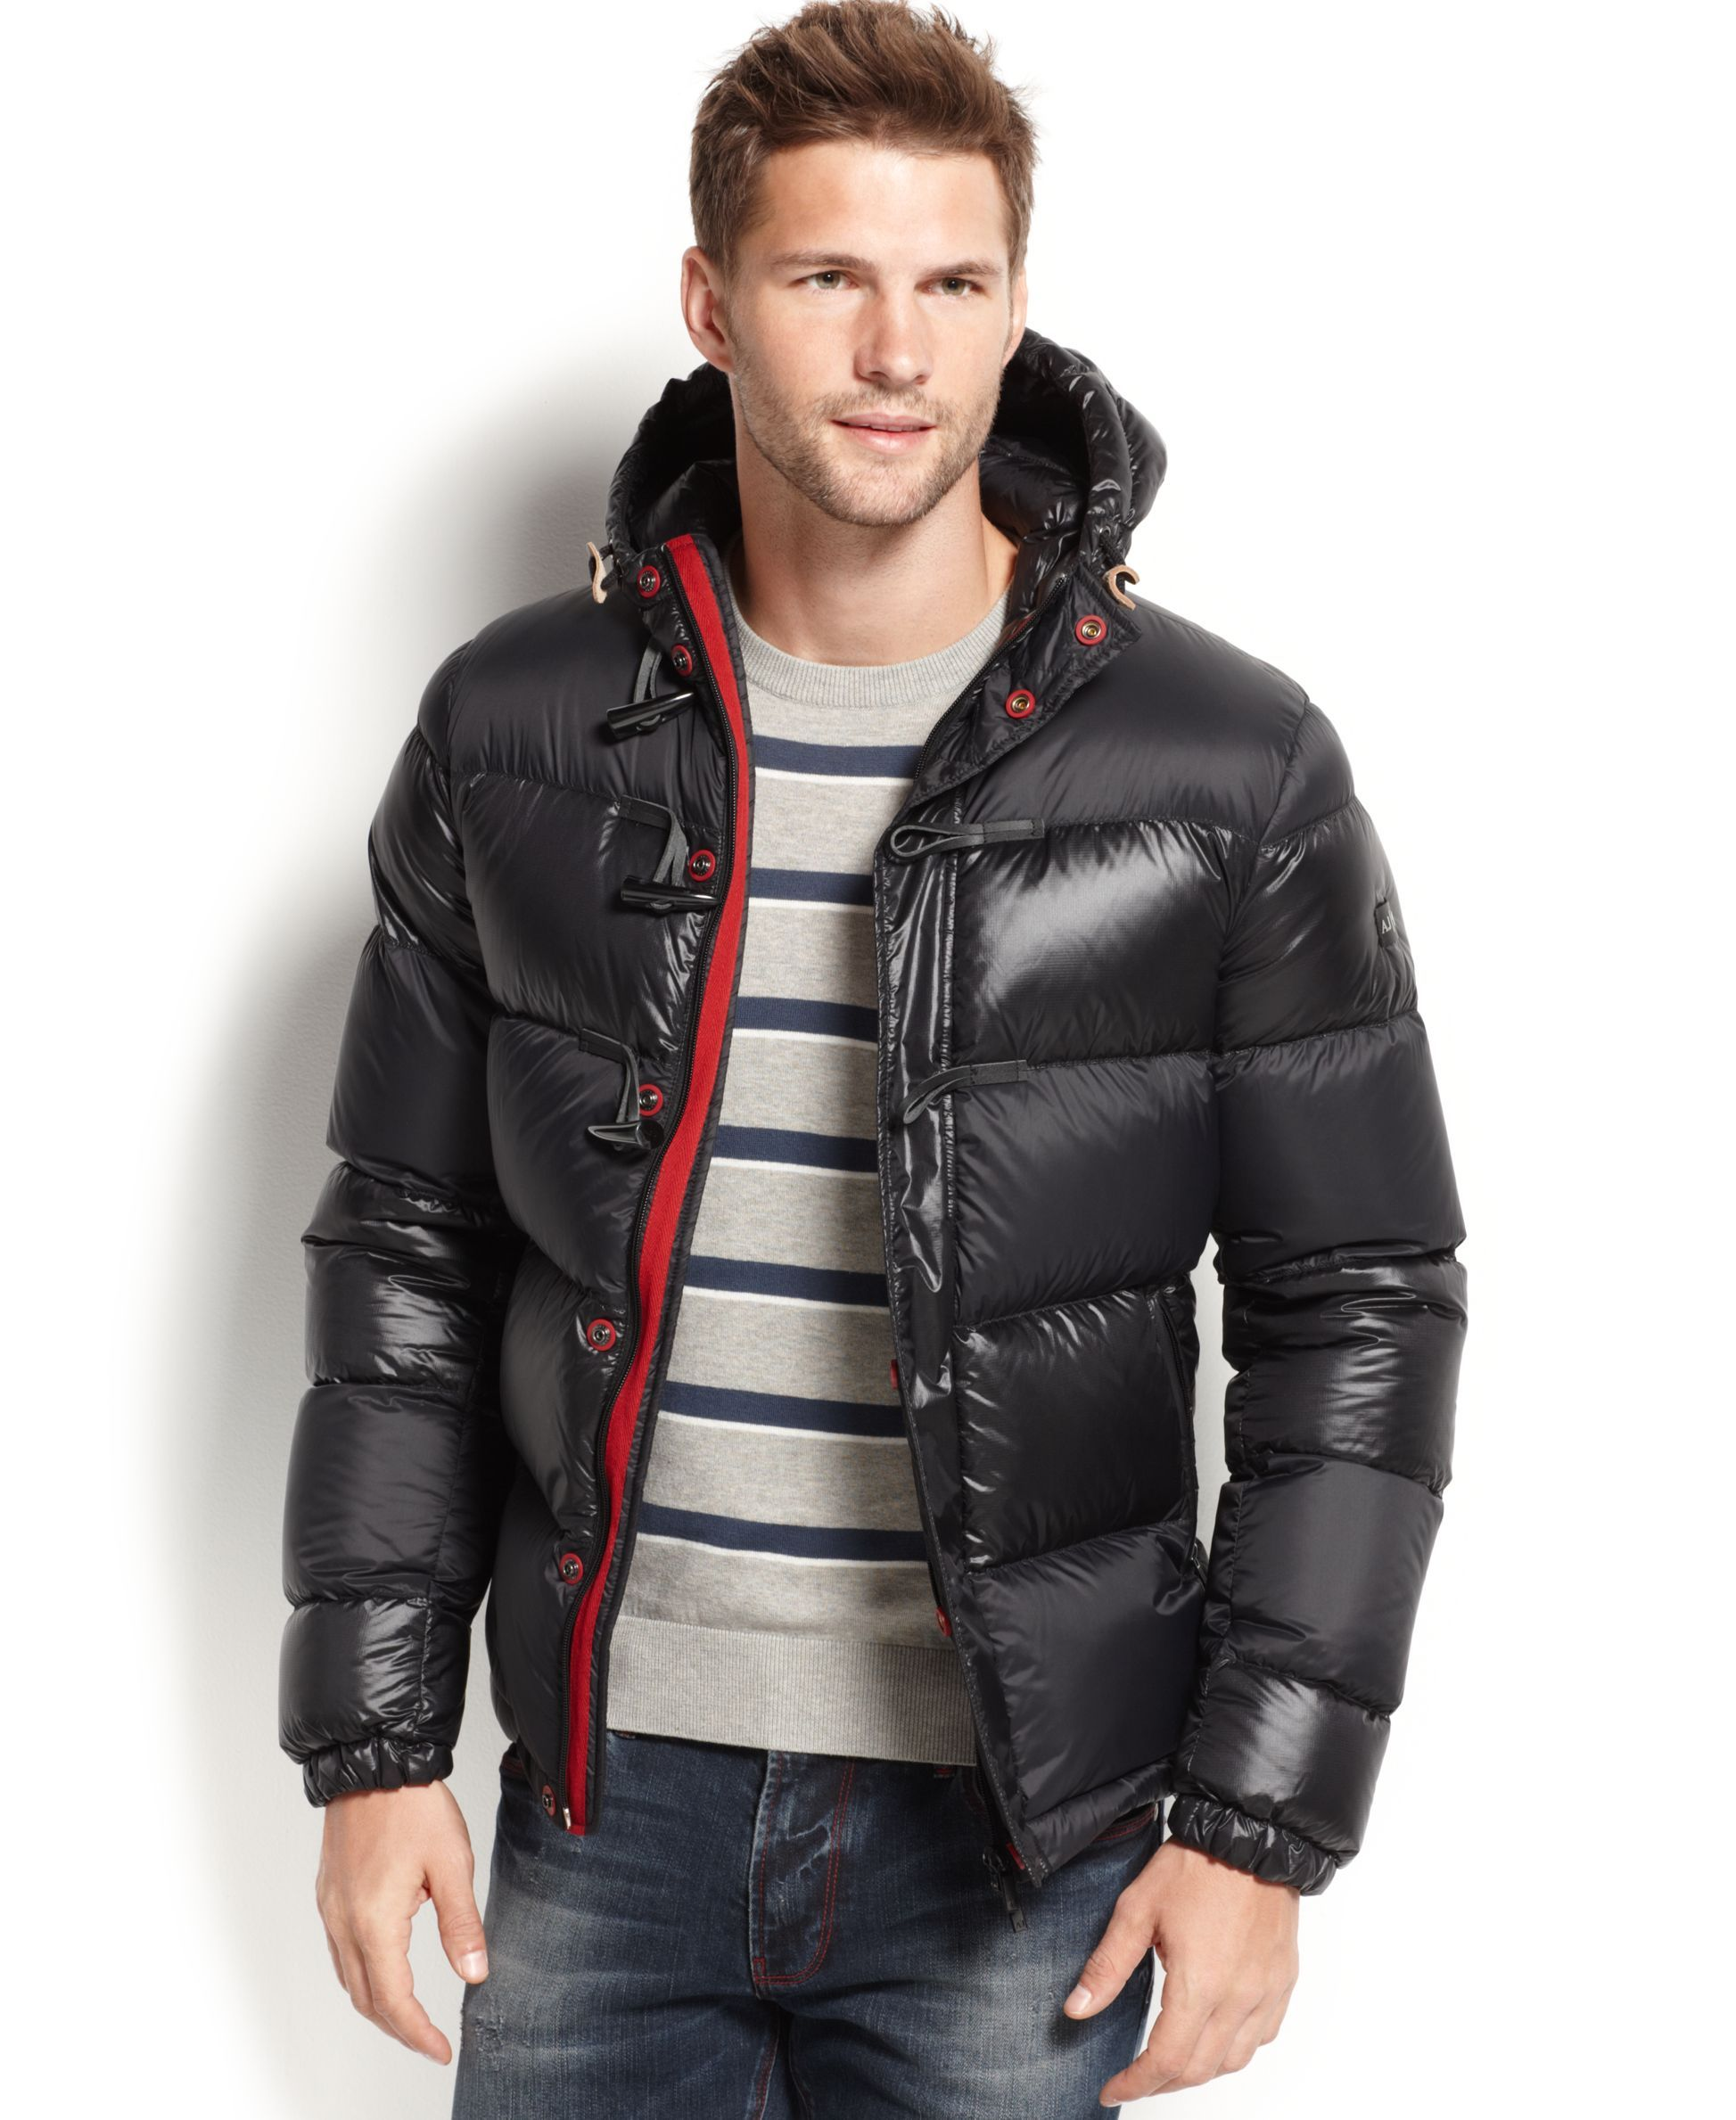 Armani Jeans Puffer Jacket Winter jacket outfits, Black